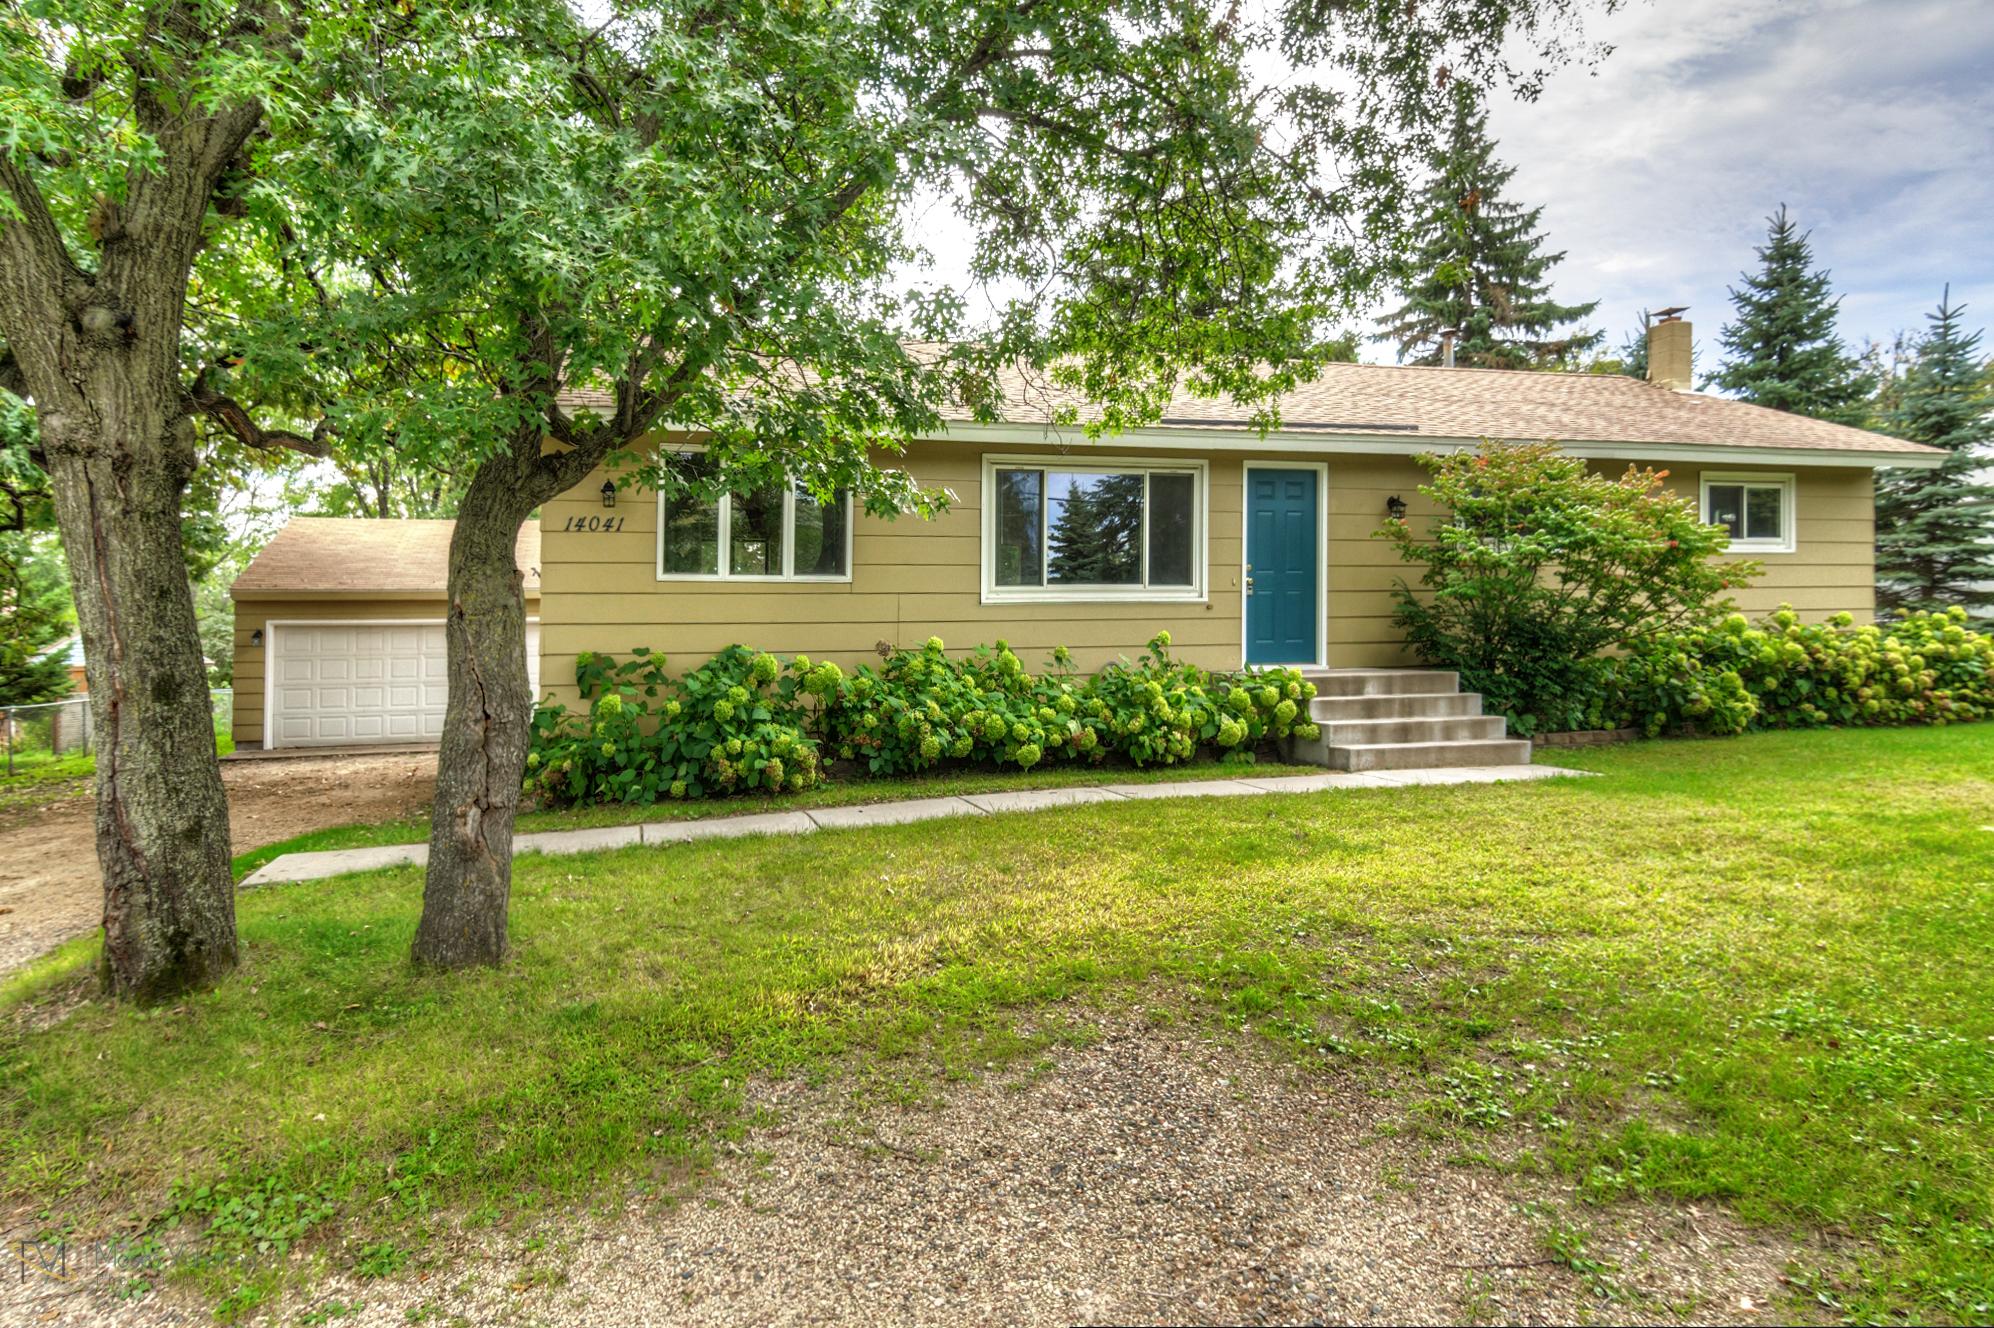 14041-crosstown-blvd-nw-andover-mn-55304-front.jpg